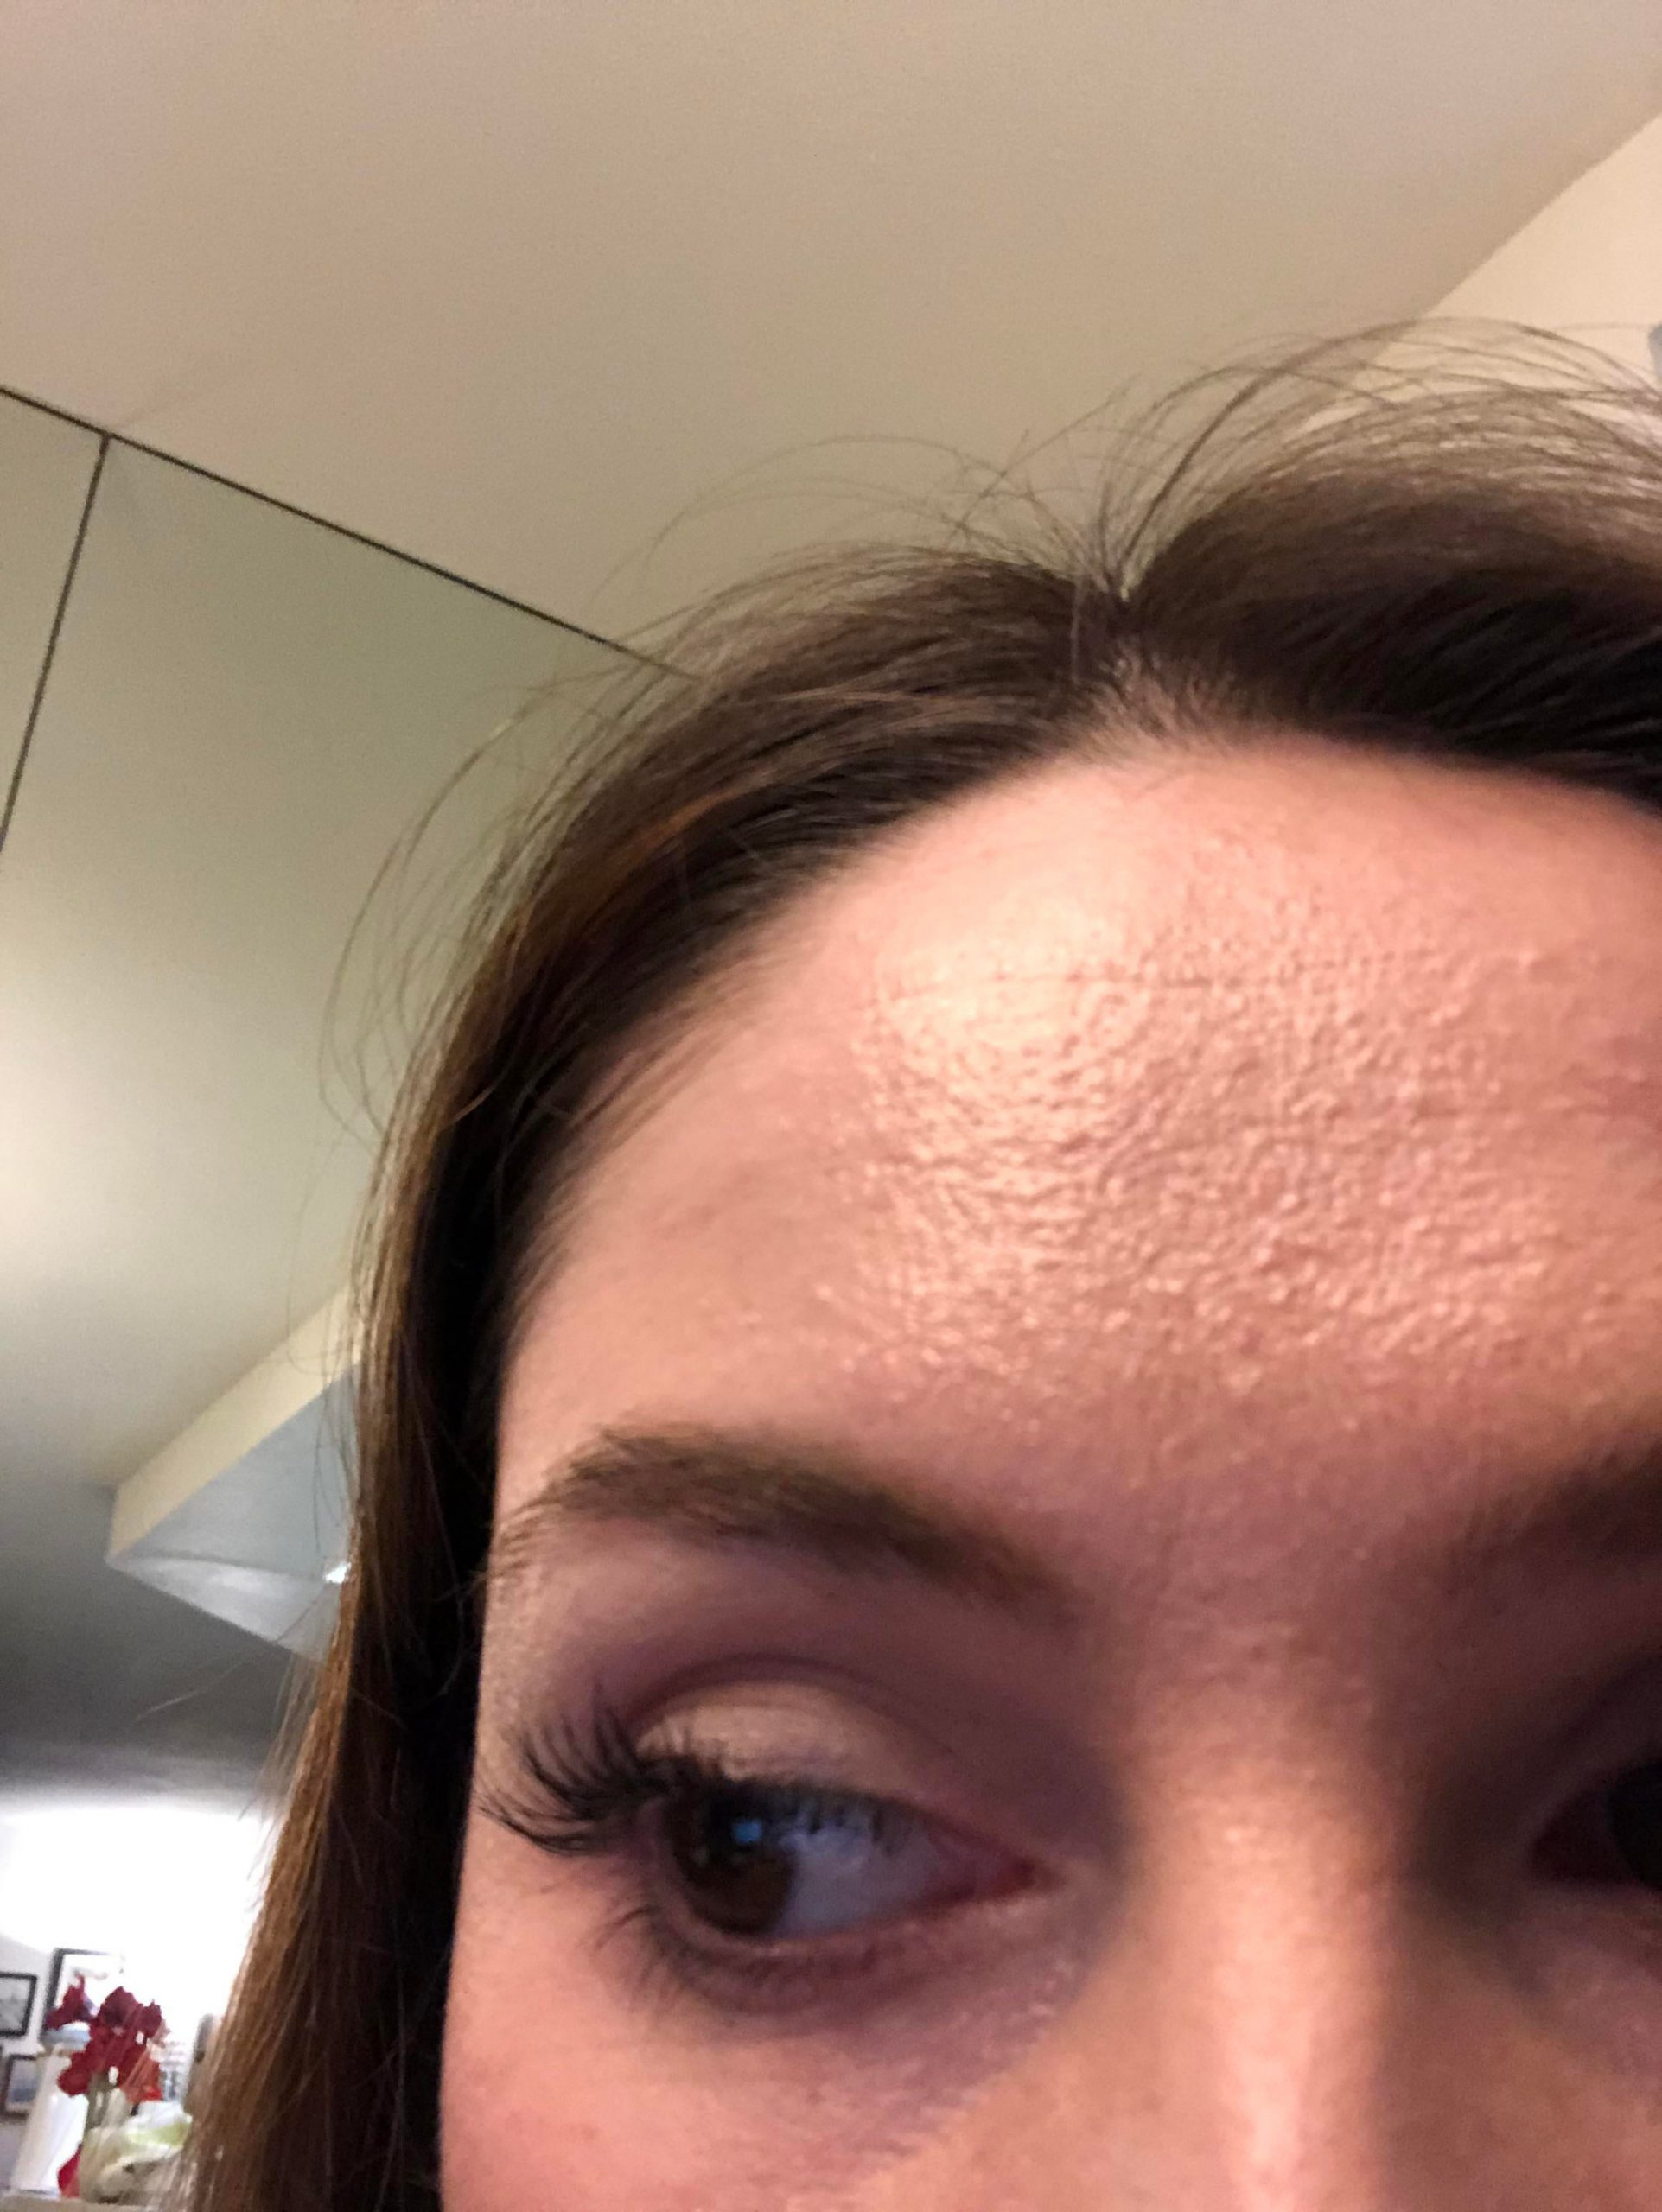 [skin concerns] Just started Differin this week. Suddenly my skin is very grainy and rough. Is this just due to dryness? Will it adjust? I have oily skin so it doesn't really feel dry…